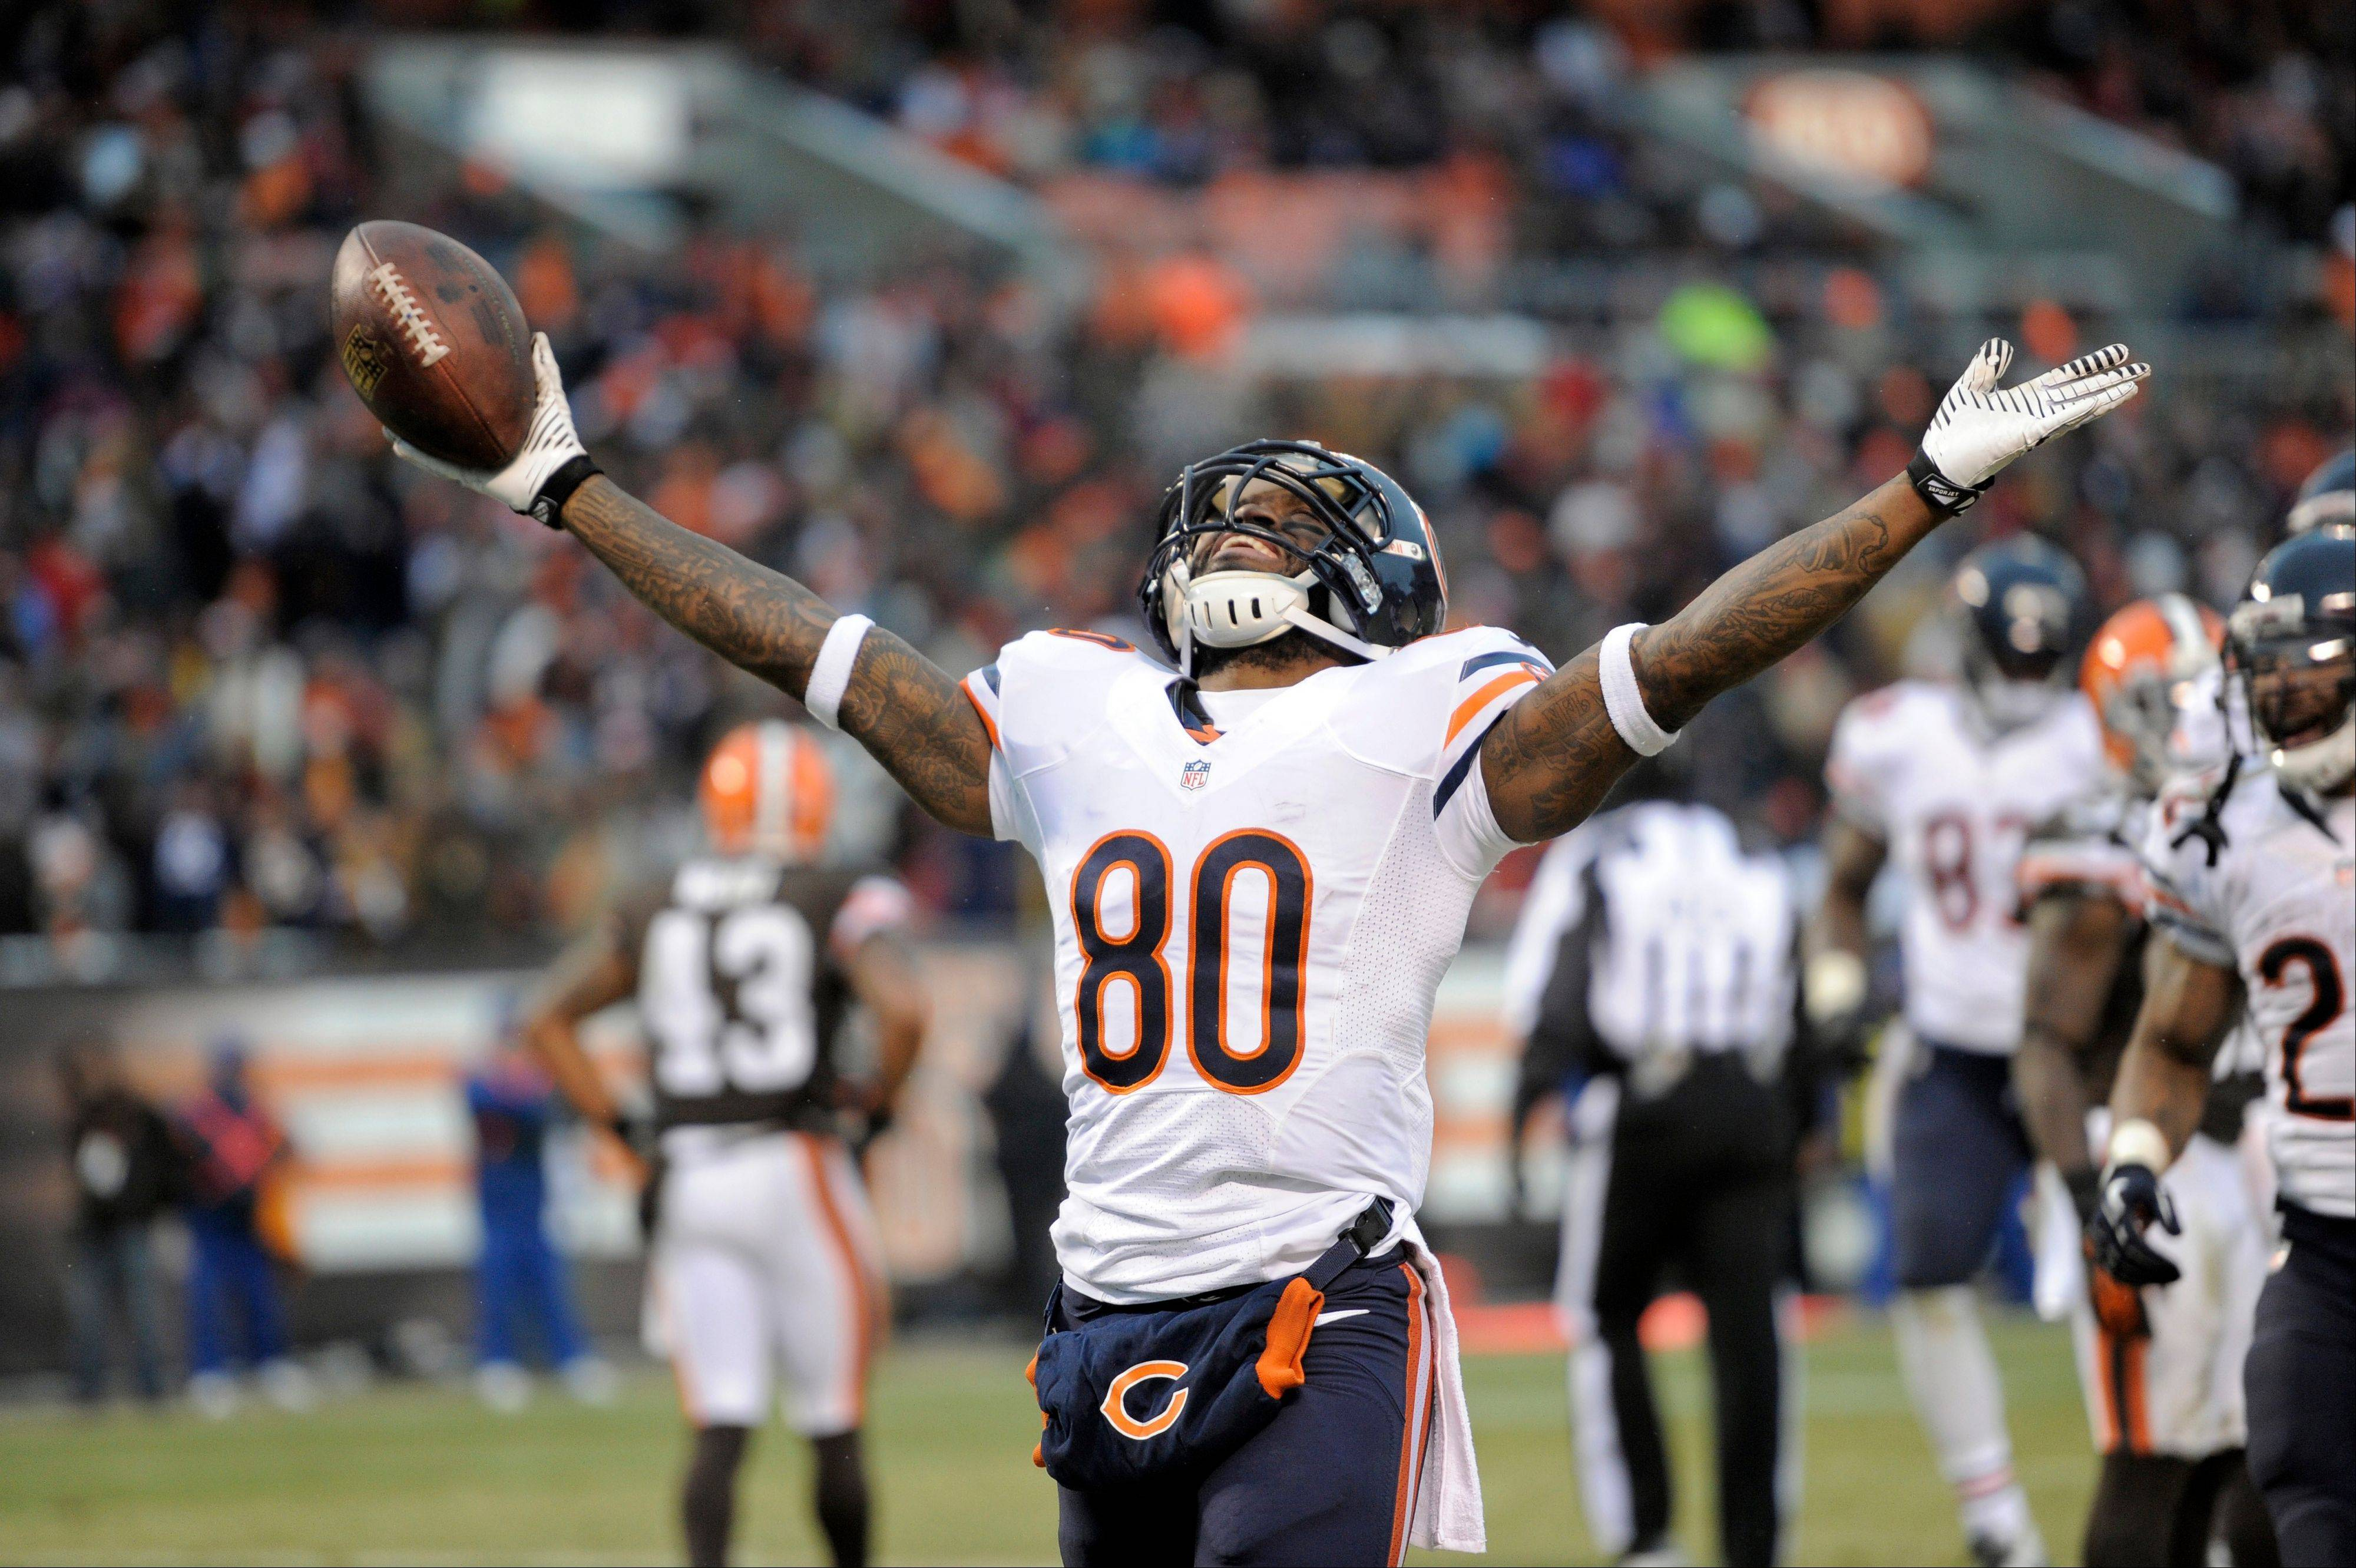 Chicago Bears wide receiver Earl Bennett celebrates after catching a four-yard touchdown pass against the Cleveland Browns in the fourth quarter.